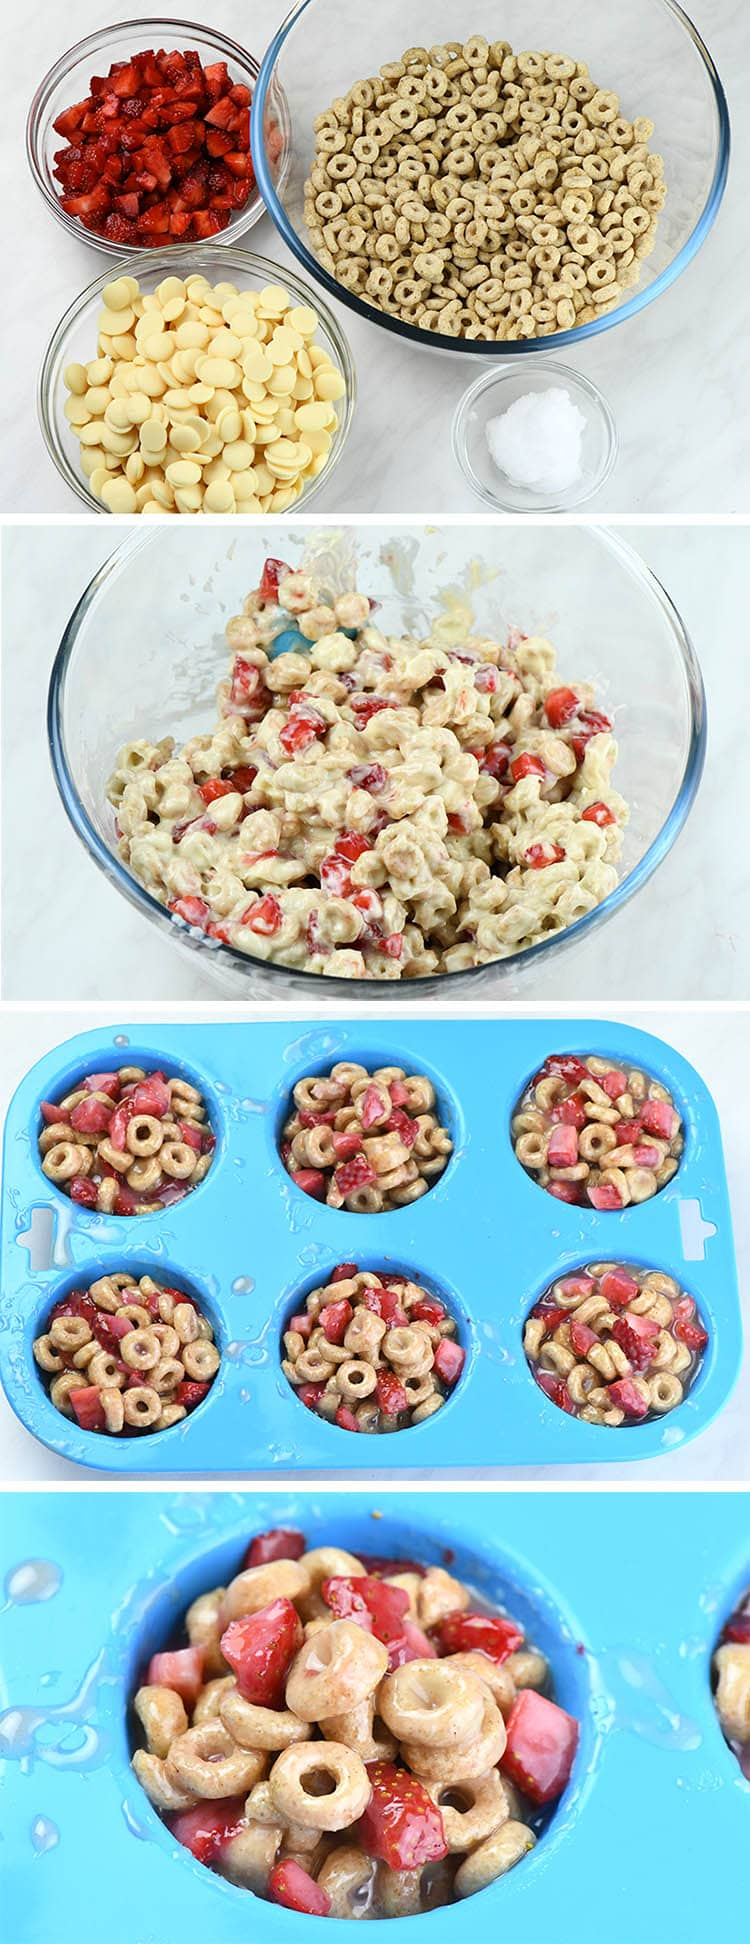 Preparing steps for White Chocolate Strawberry Cheerios Cups